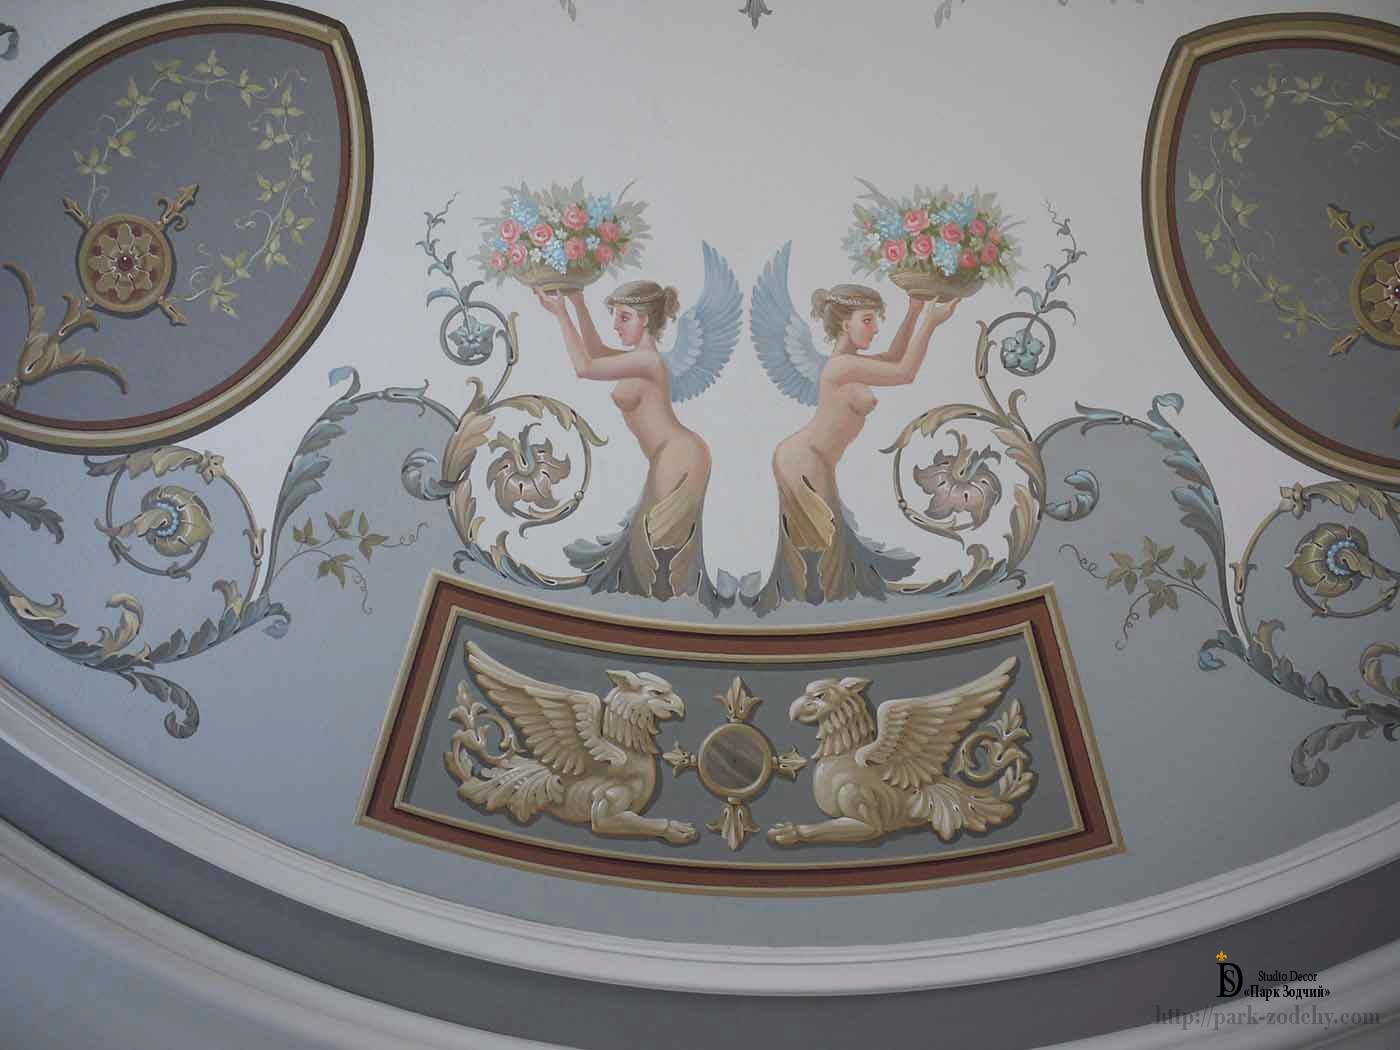 Painted ceiling in Empire style